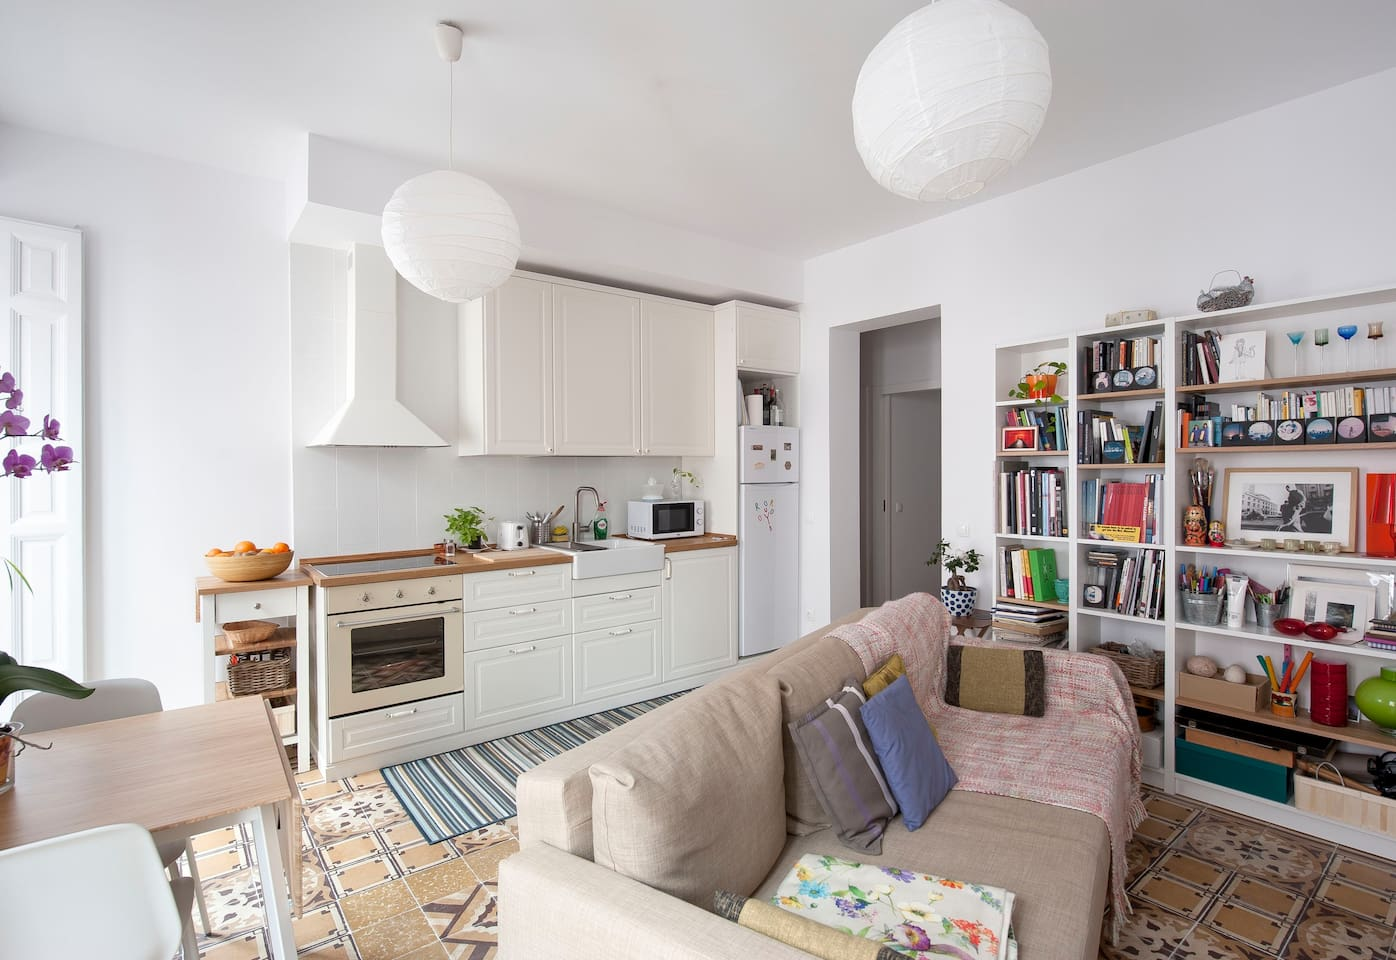 Sitting-room with kitchen and TV